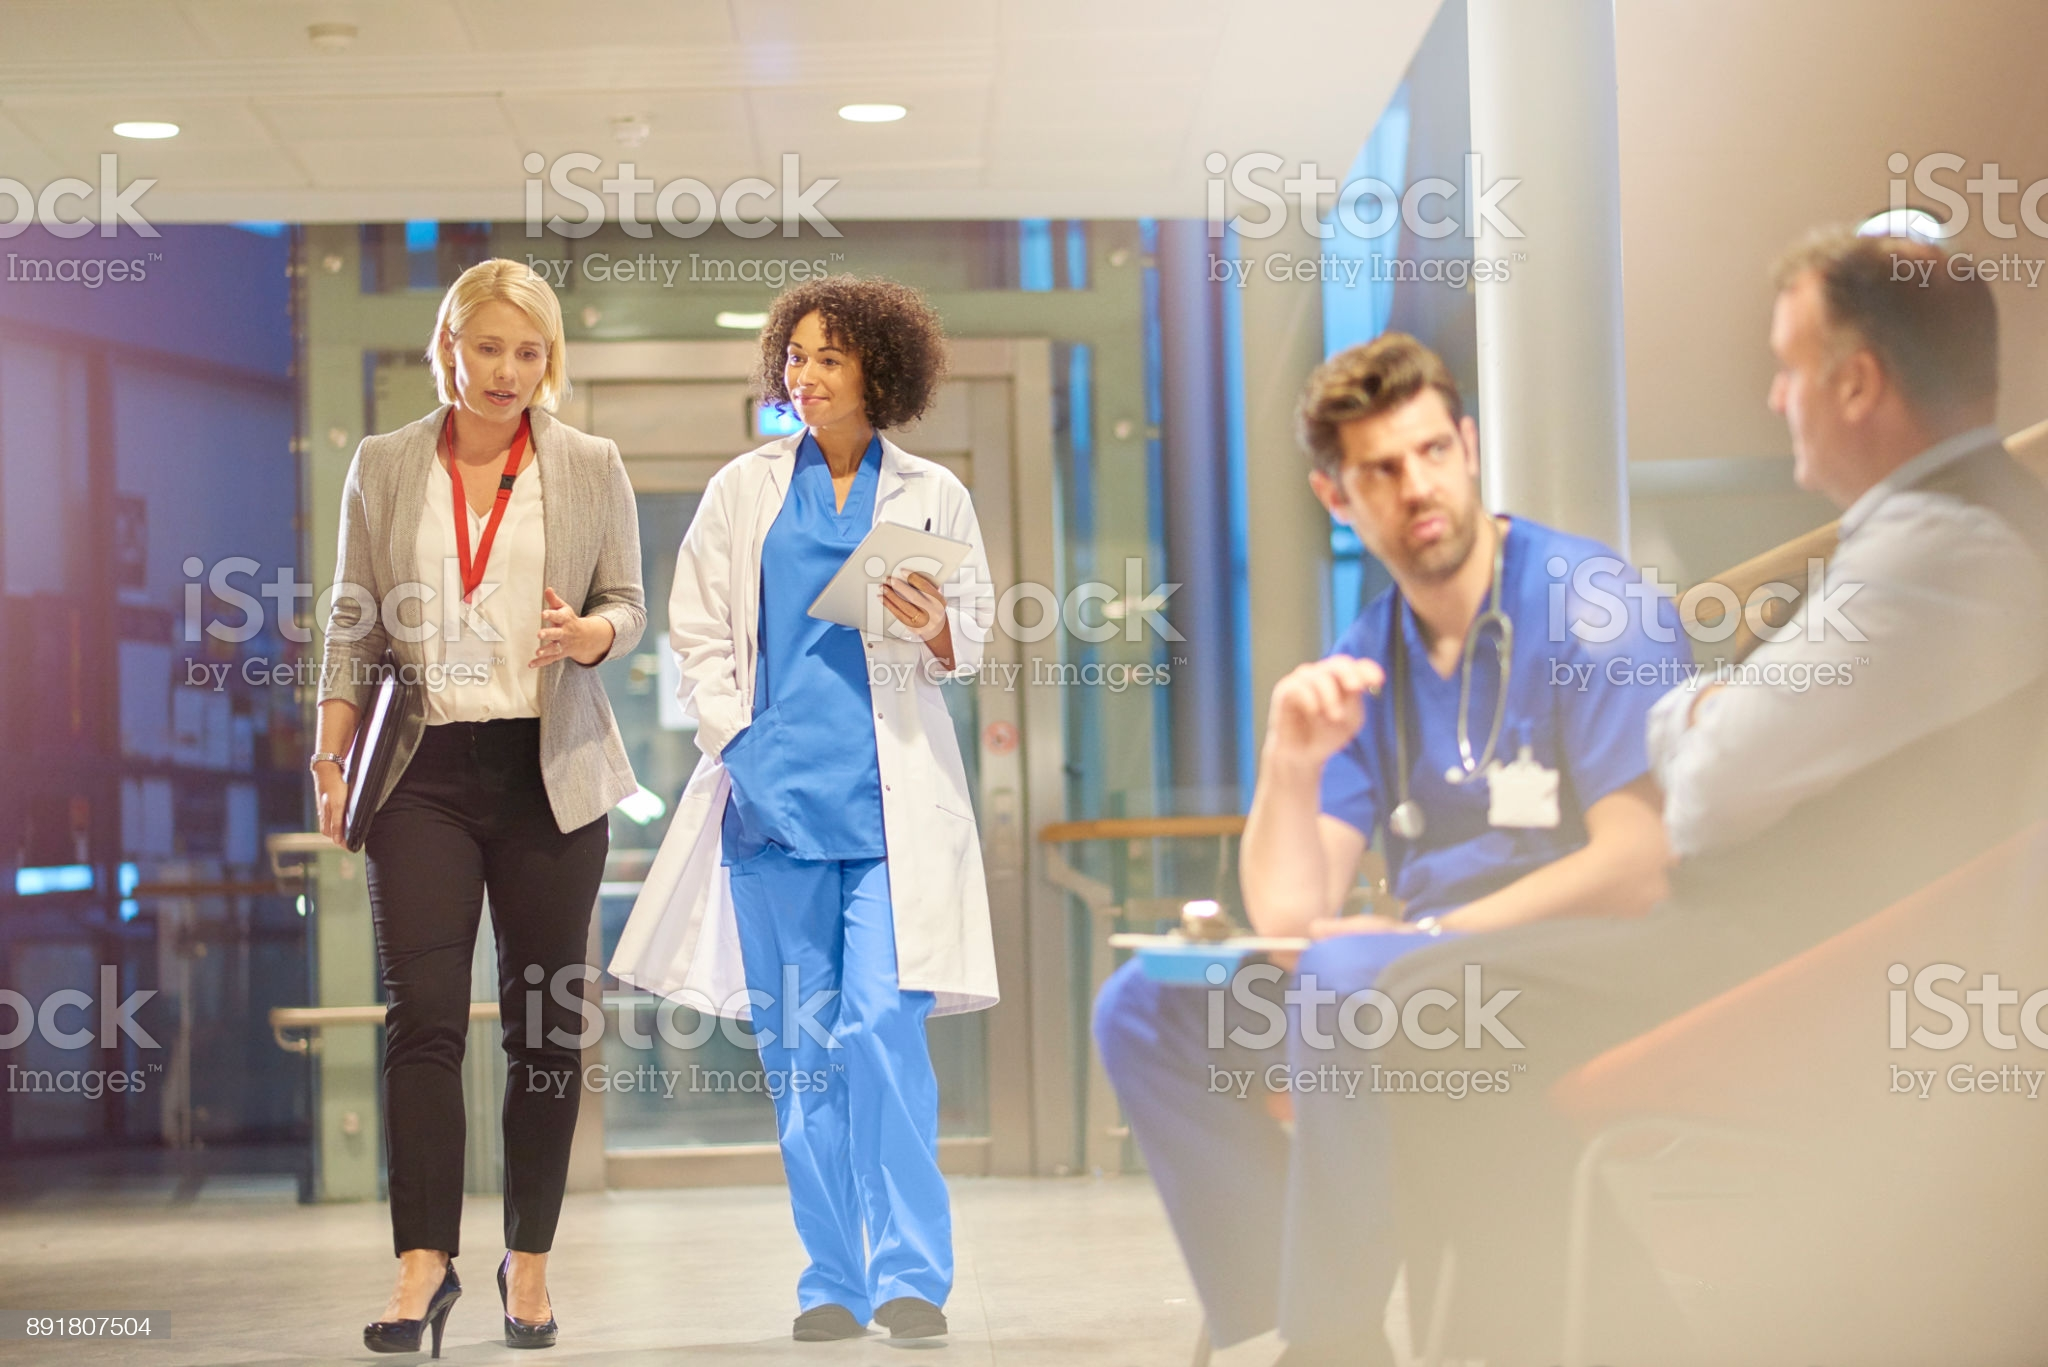 doctor-listening-to-sales-rep-in-hospital-corridor-picture-id891807504